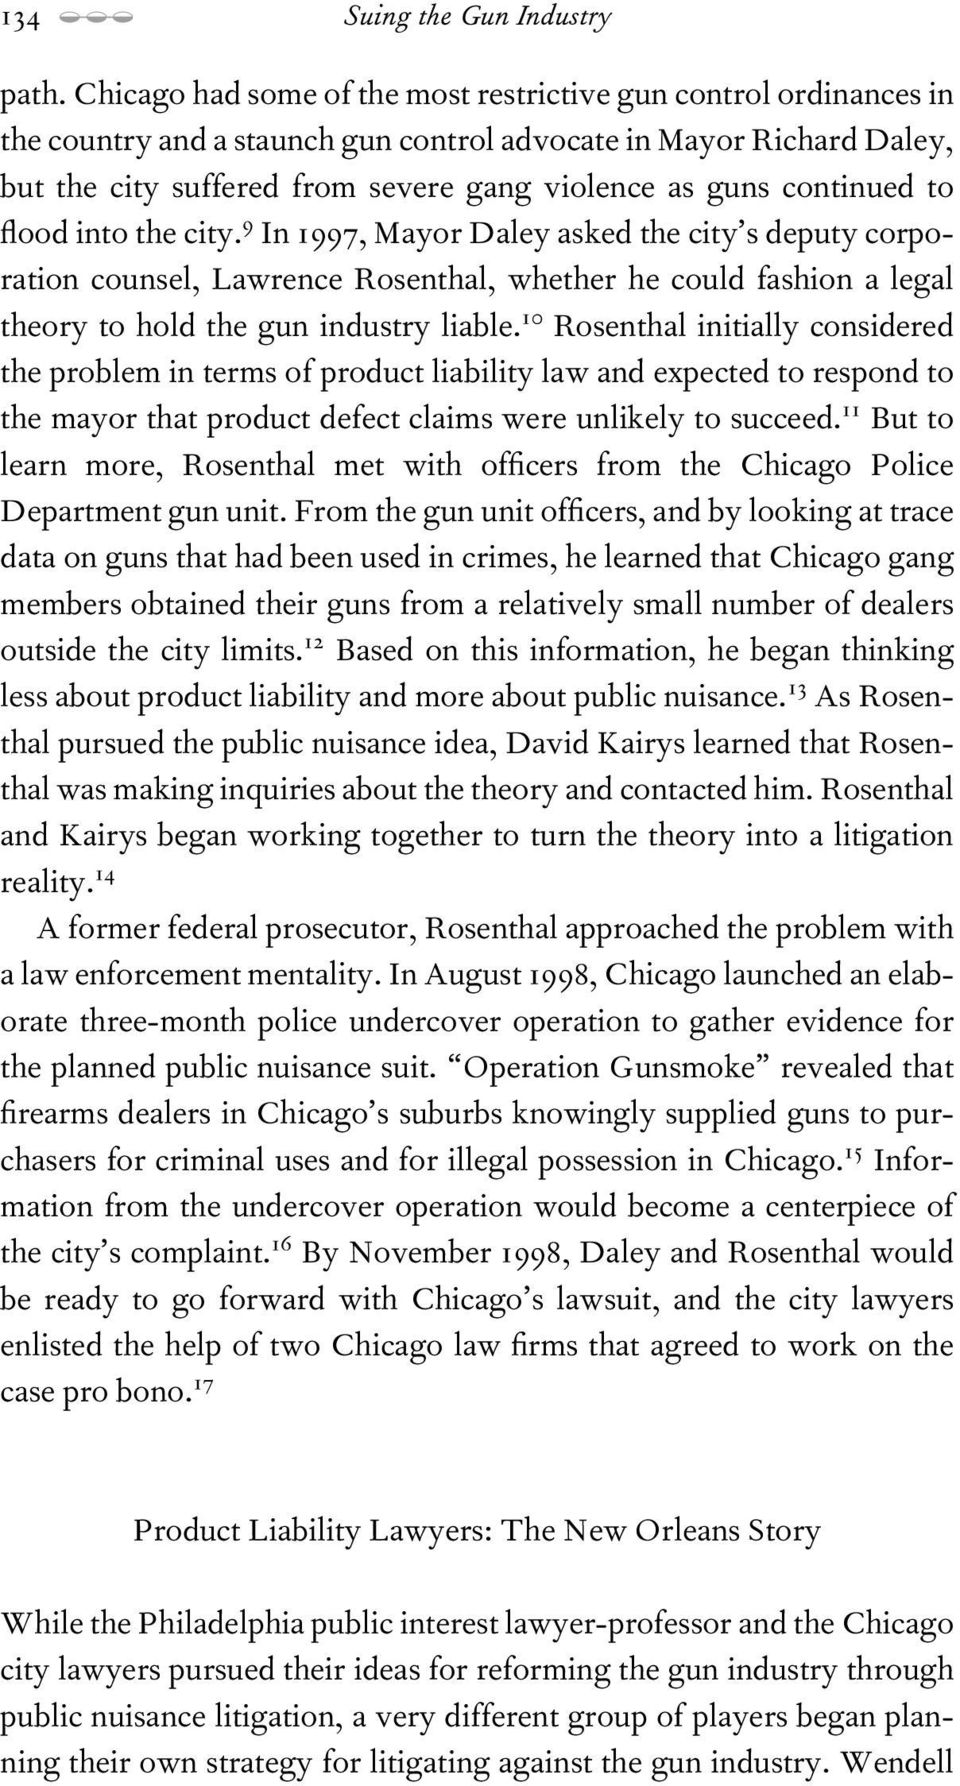 continued to ood into the city. 9 In 1997, Mayor Daley asked the city s deputy corporation counsel, Lawrence Rosenthal, whether he could fashion a legal theory to hold the gun industry liable.